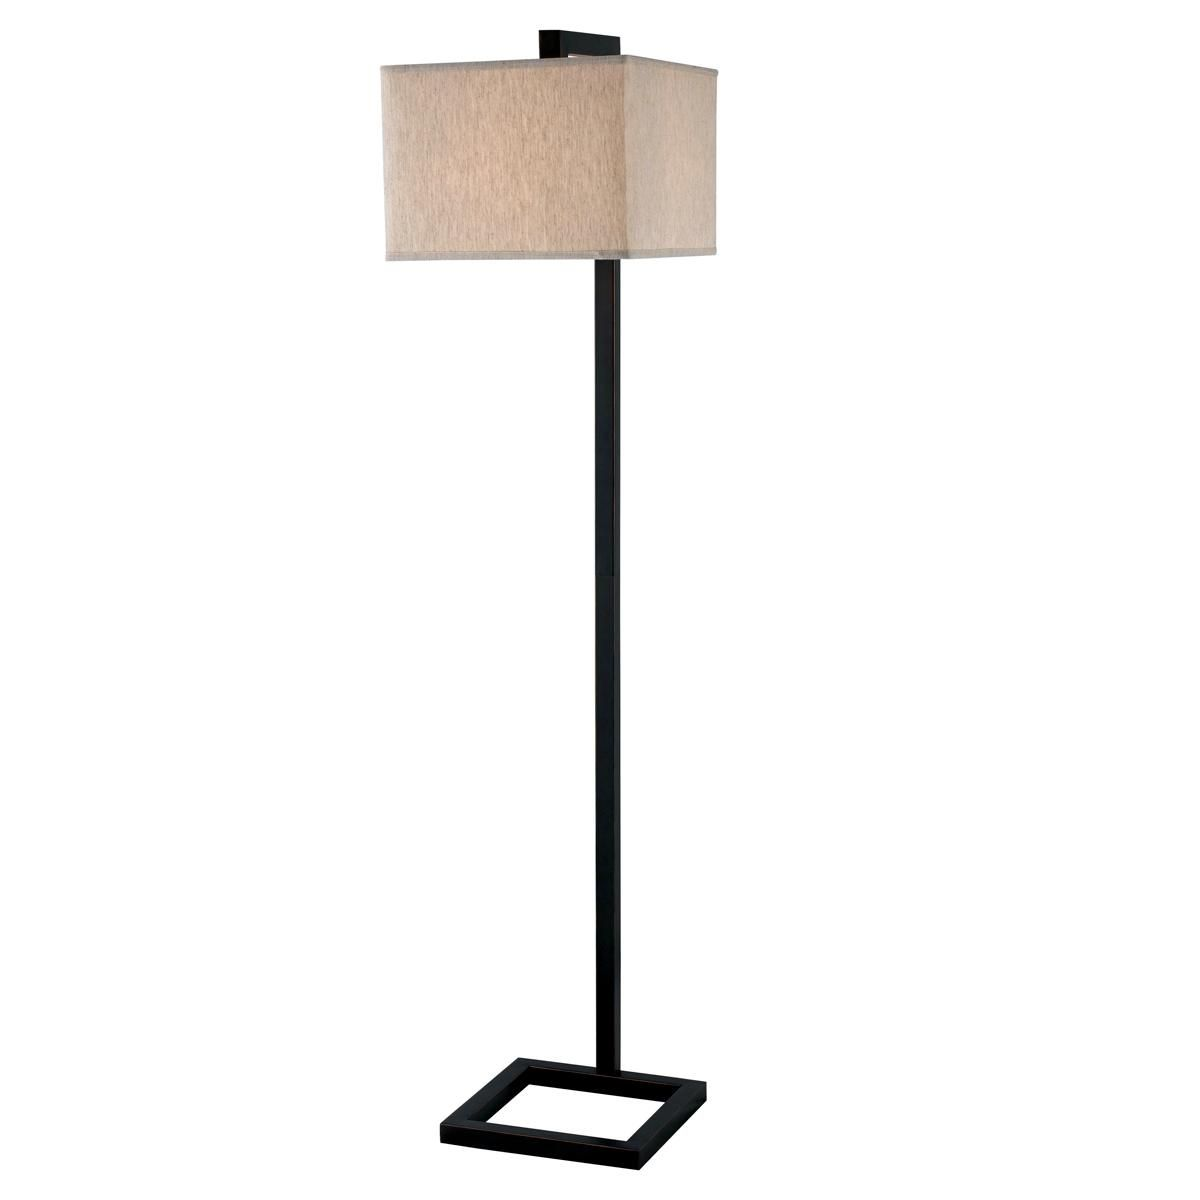 Square frame base floor lamp steel or bronze floor lamp steel and square frame base floor lamp steel or bronze 150w 64hx15x15 shades of light fl13035 bz mozeypictures Image collections